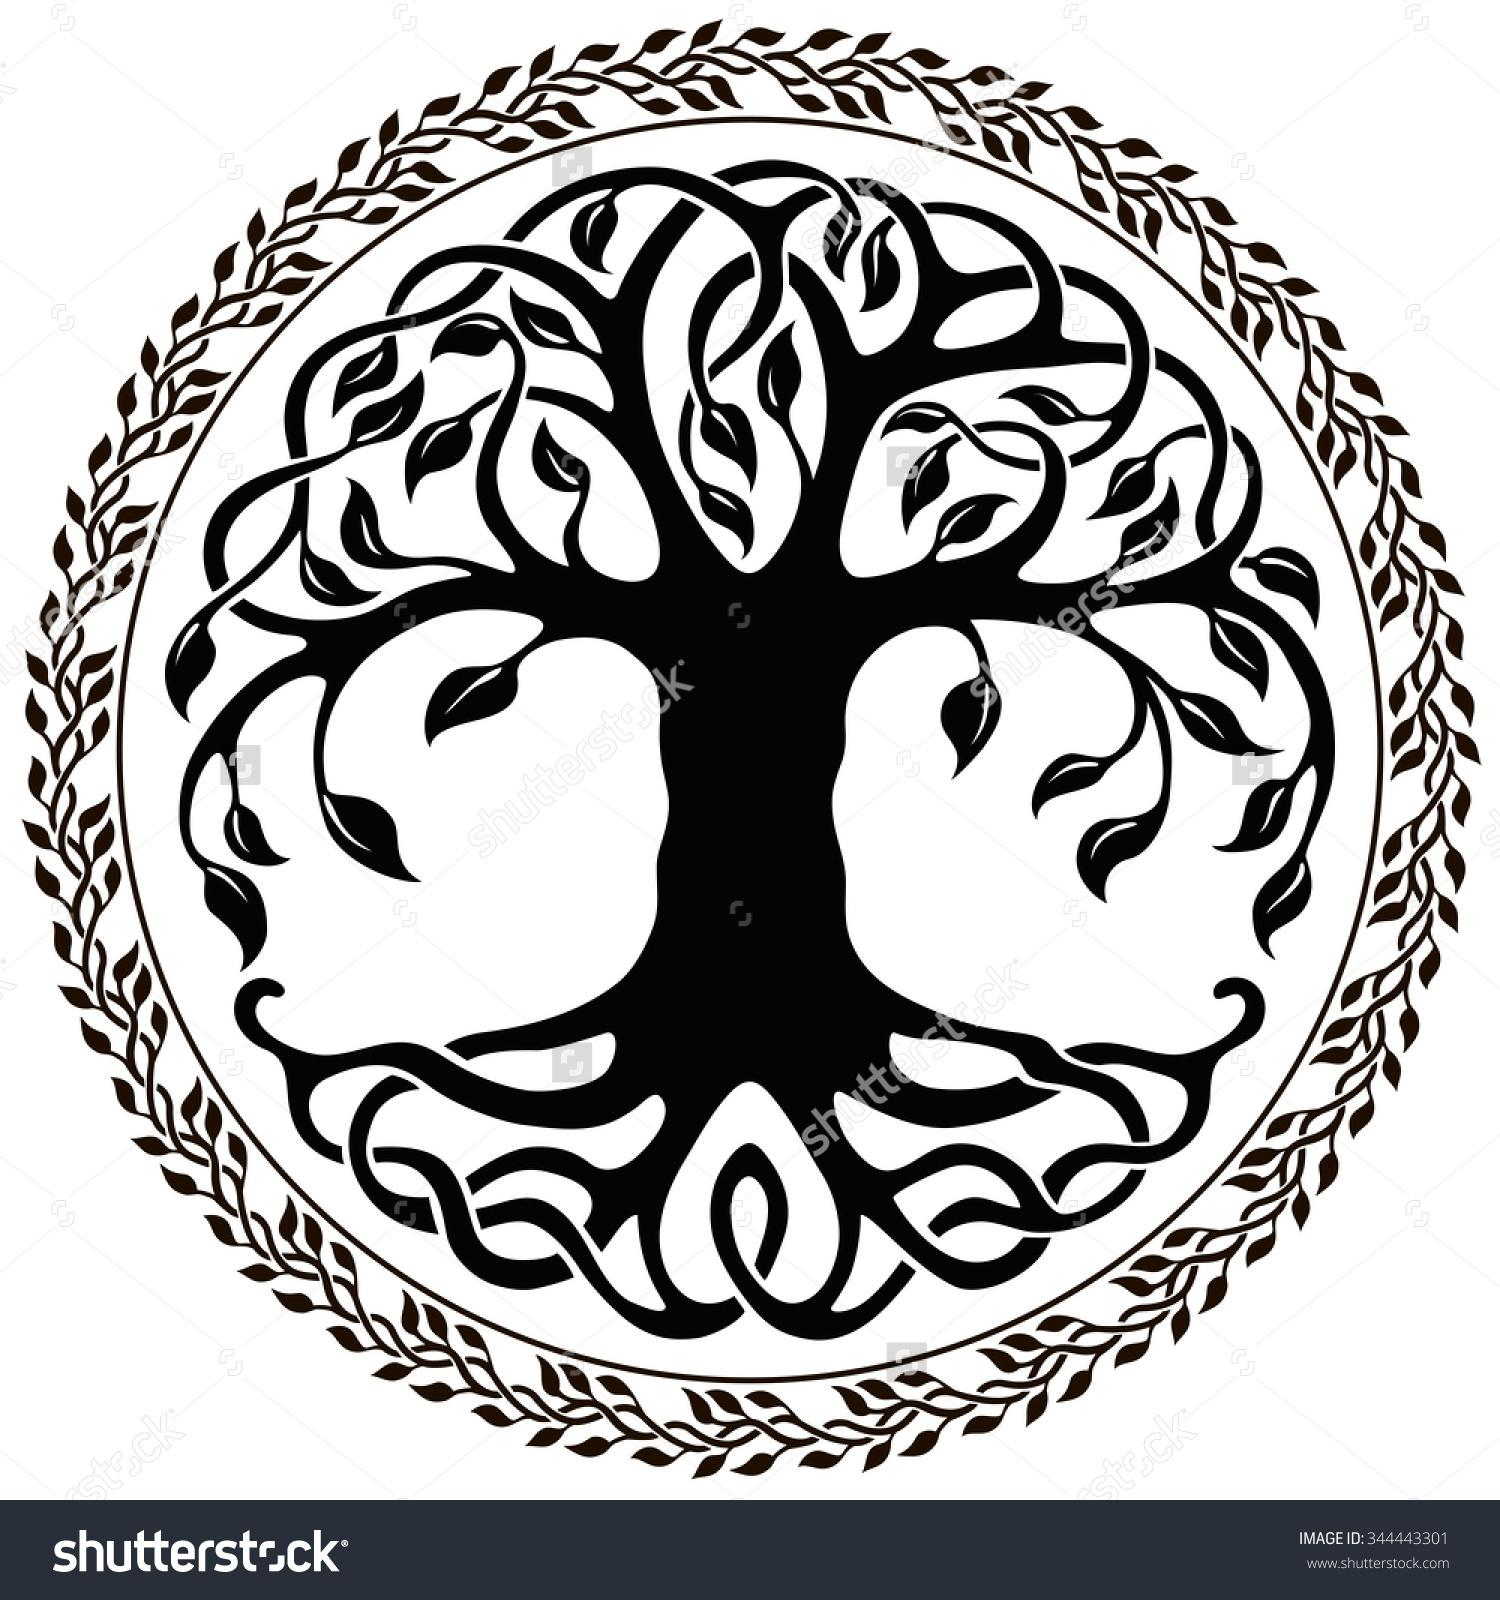 Celt clipart silhouette Best clip tree tree